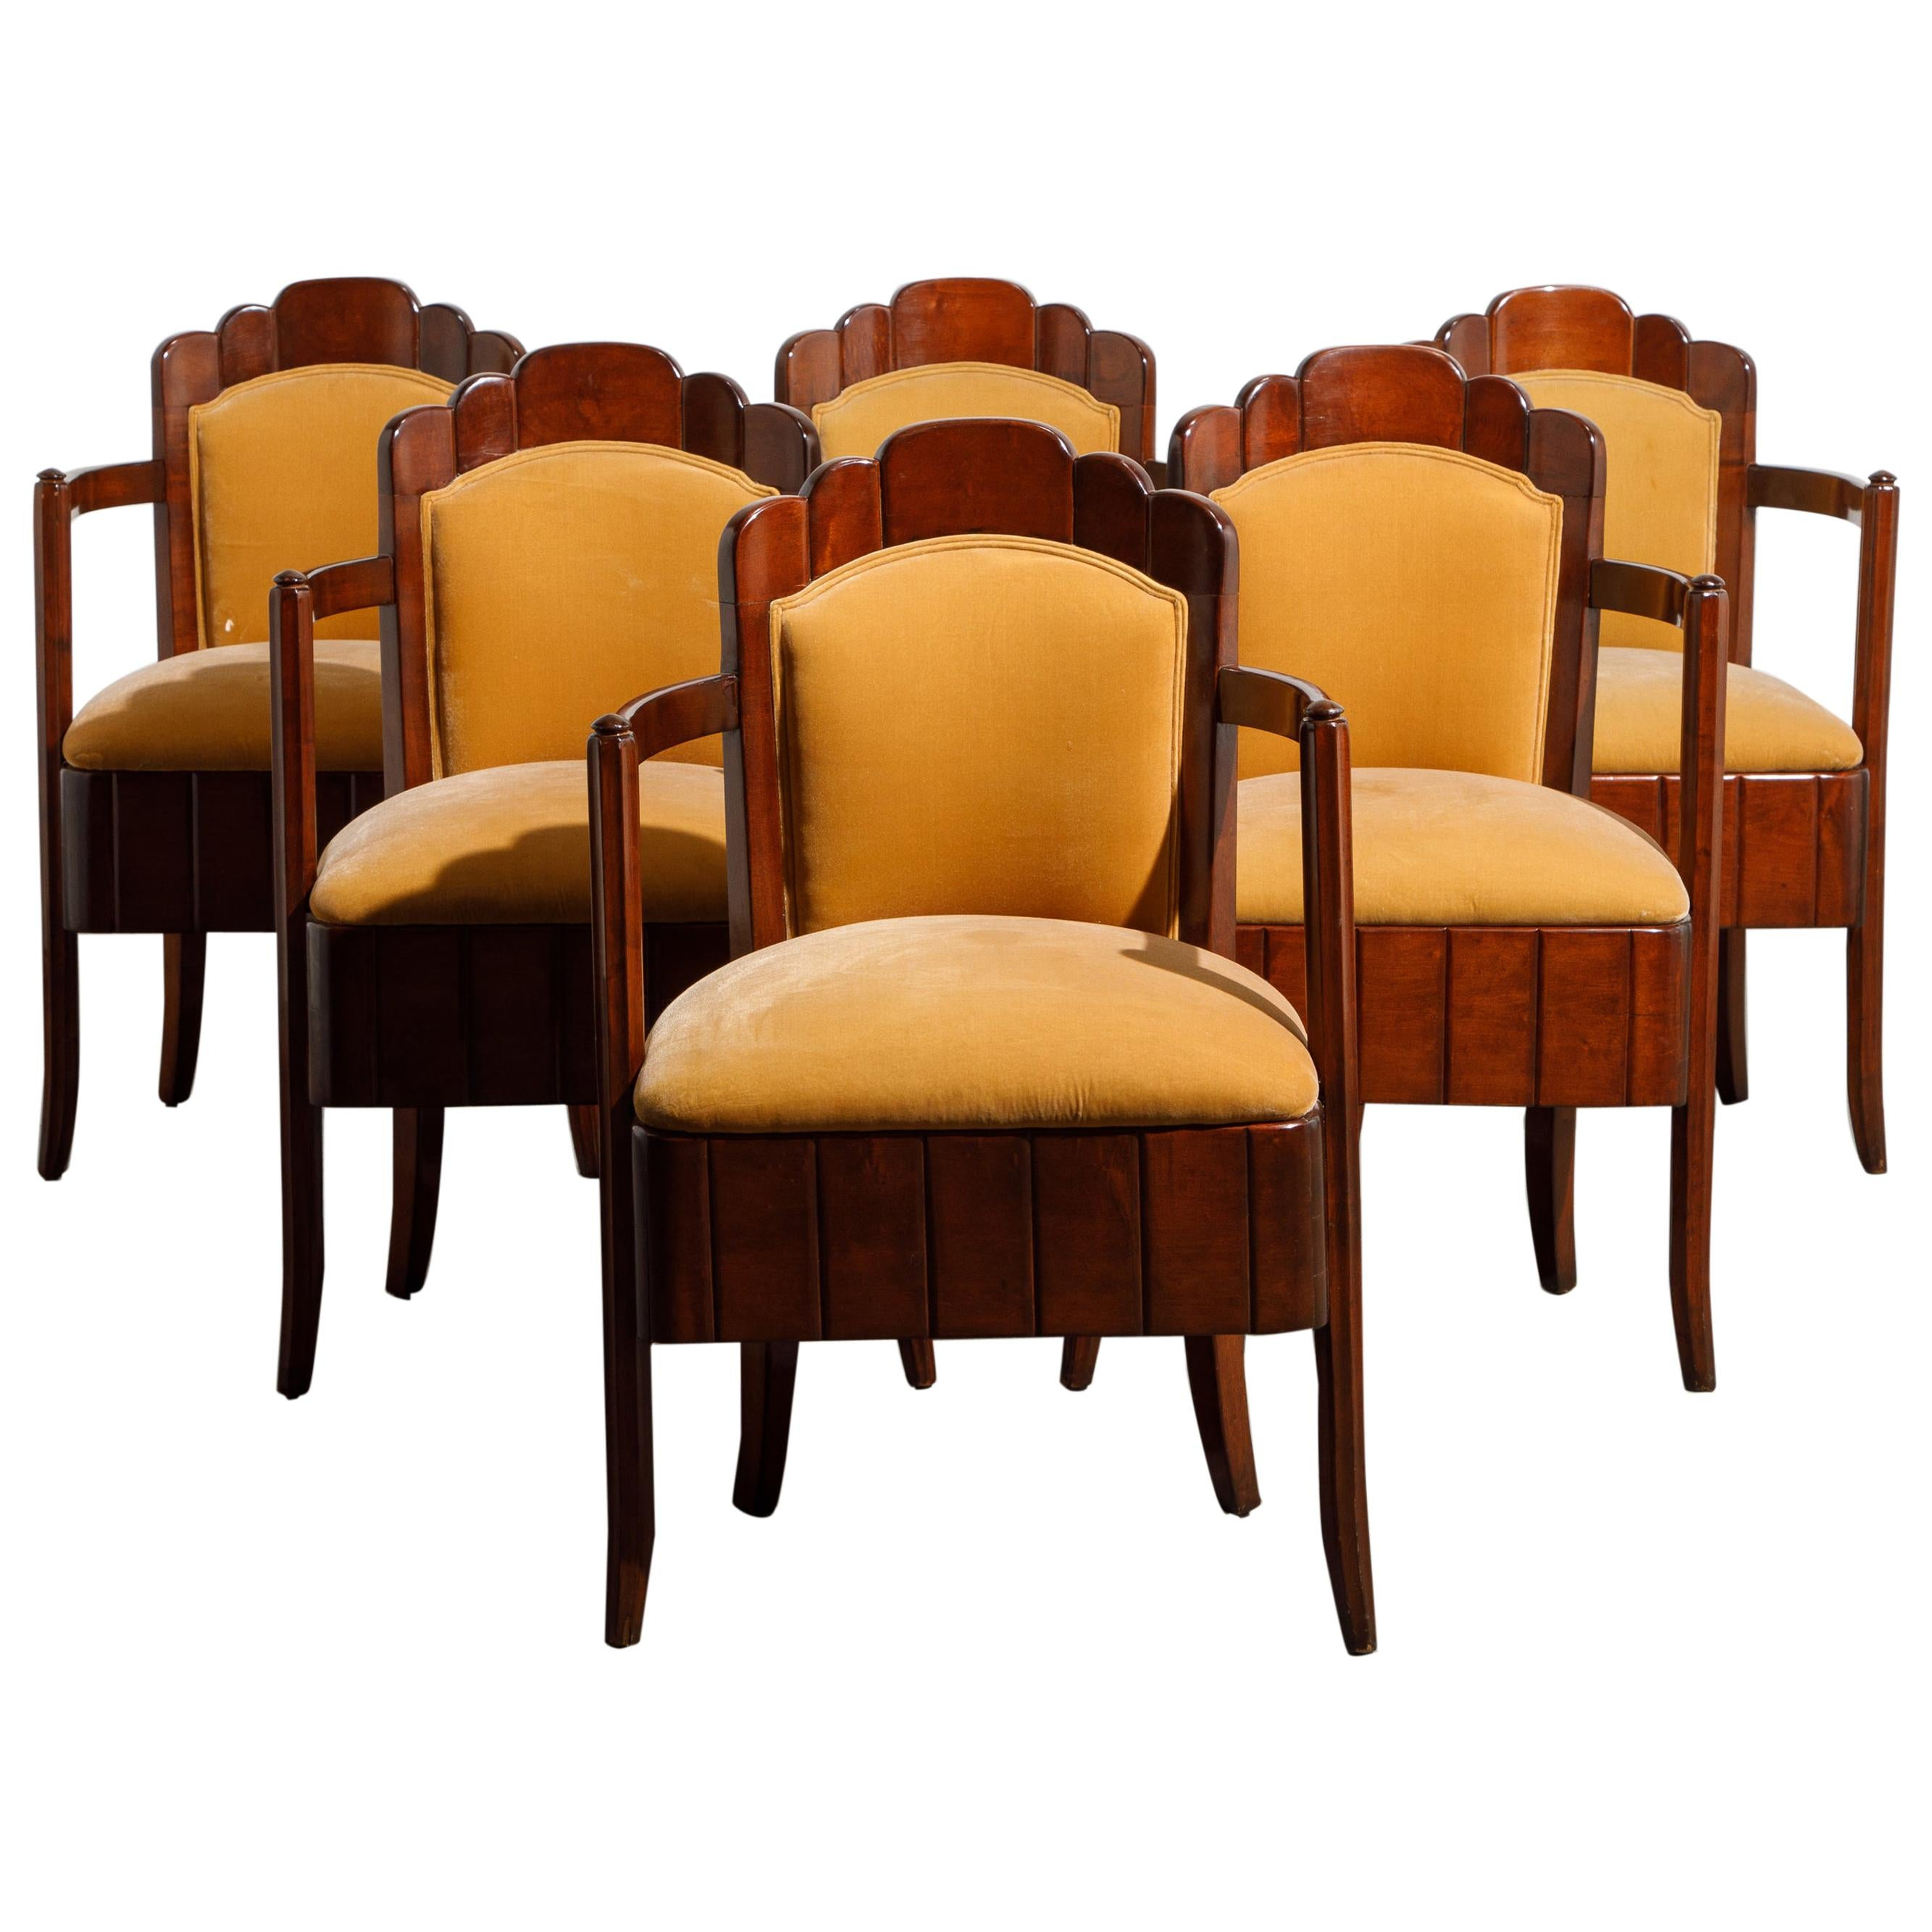 Important Pierre Patout Mahogany Dining Chairs from S.S. Île de France, c. 1927